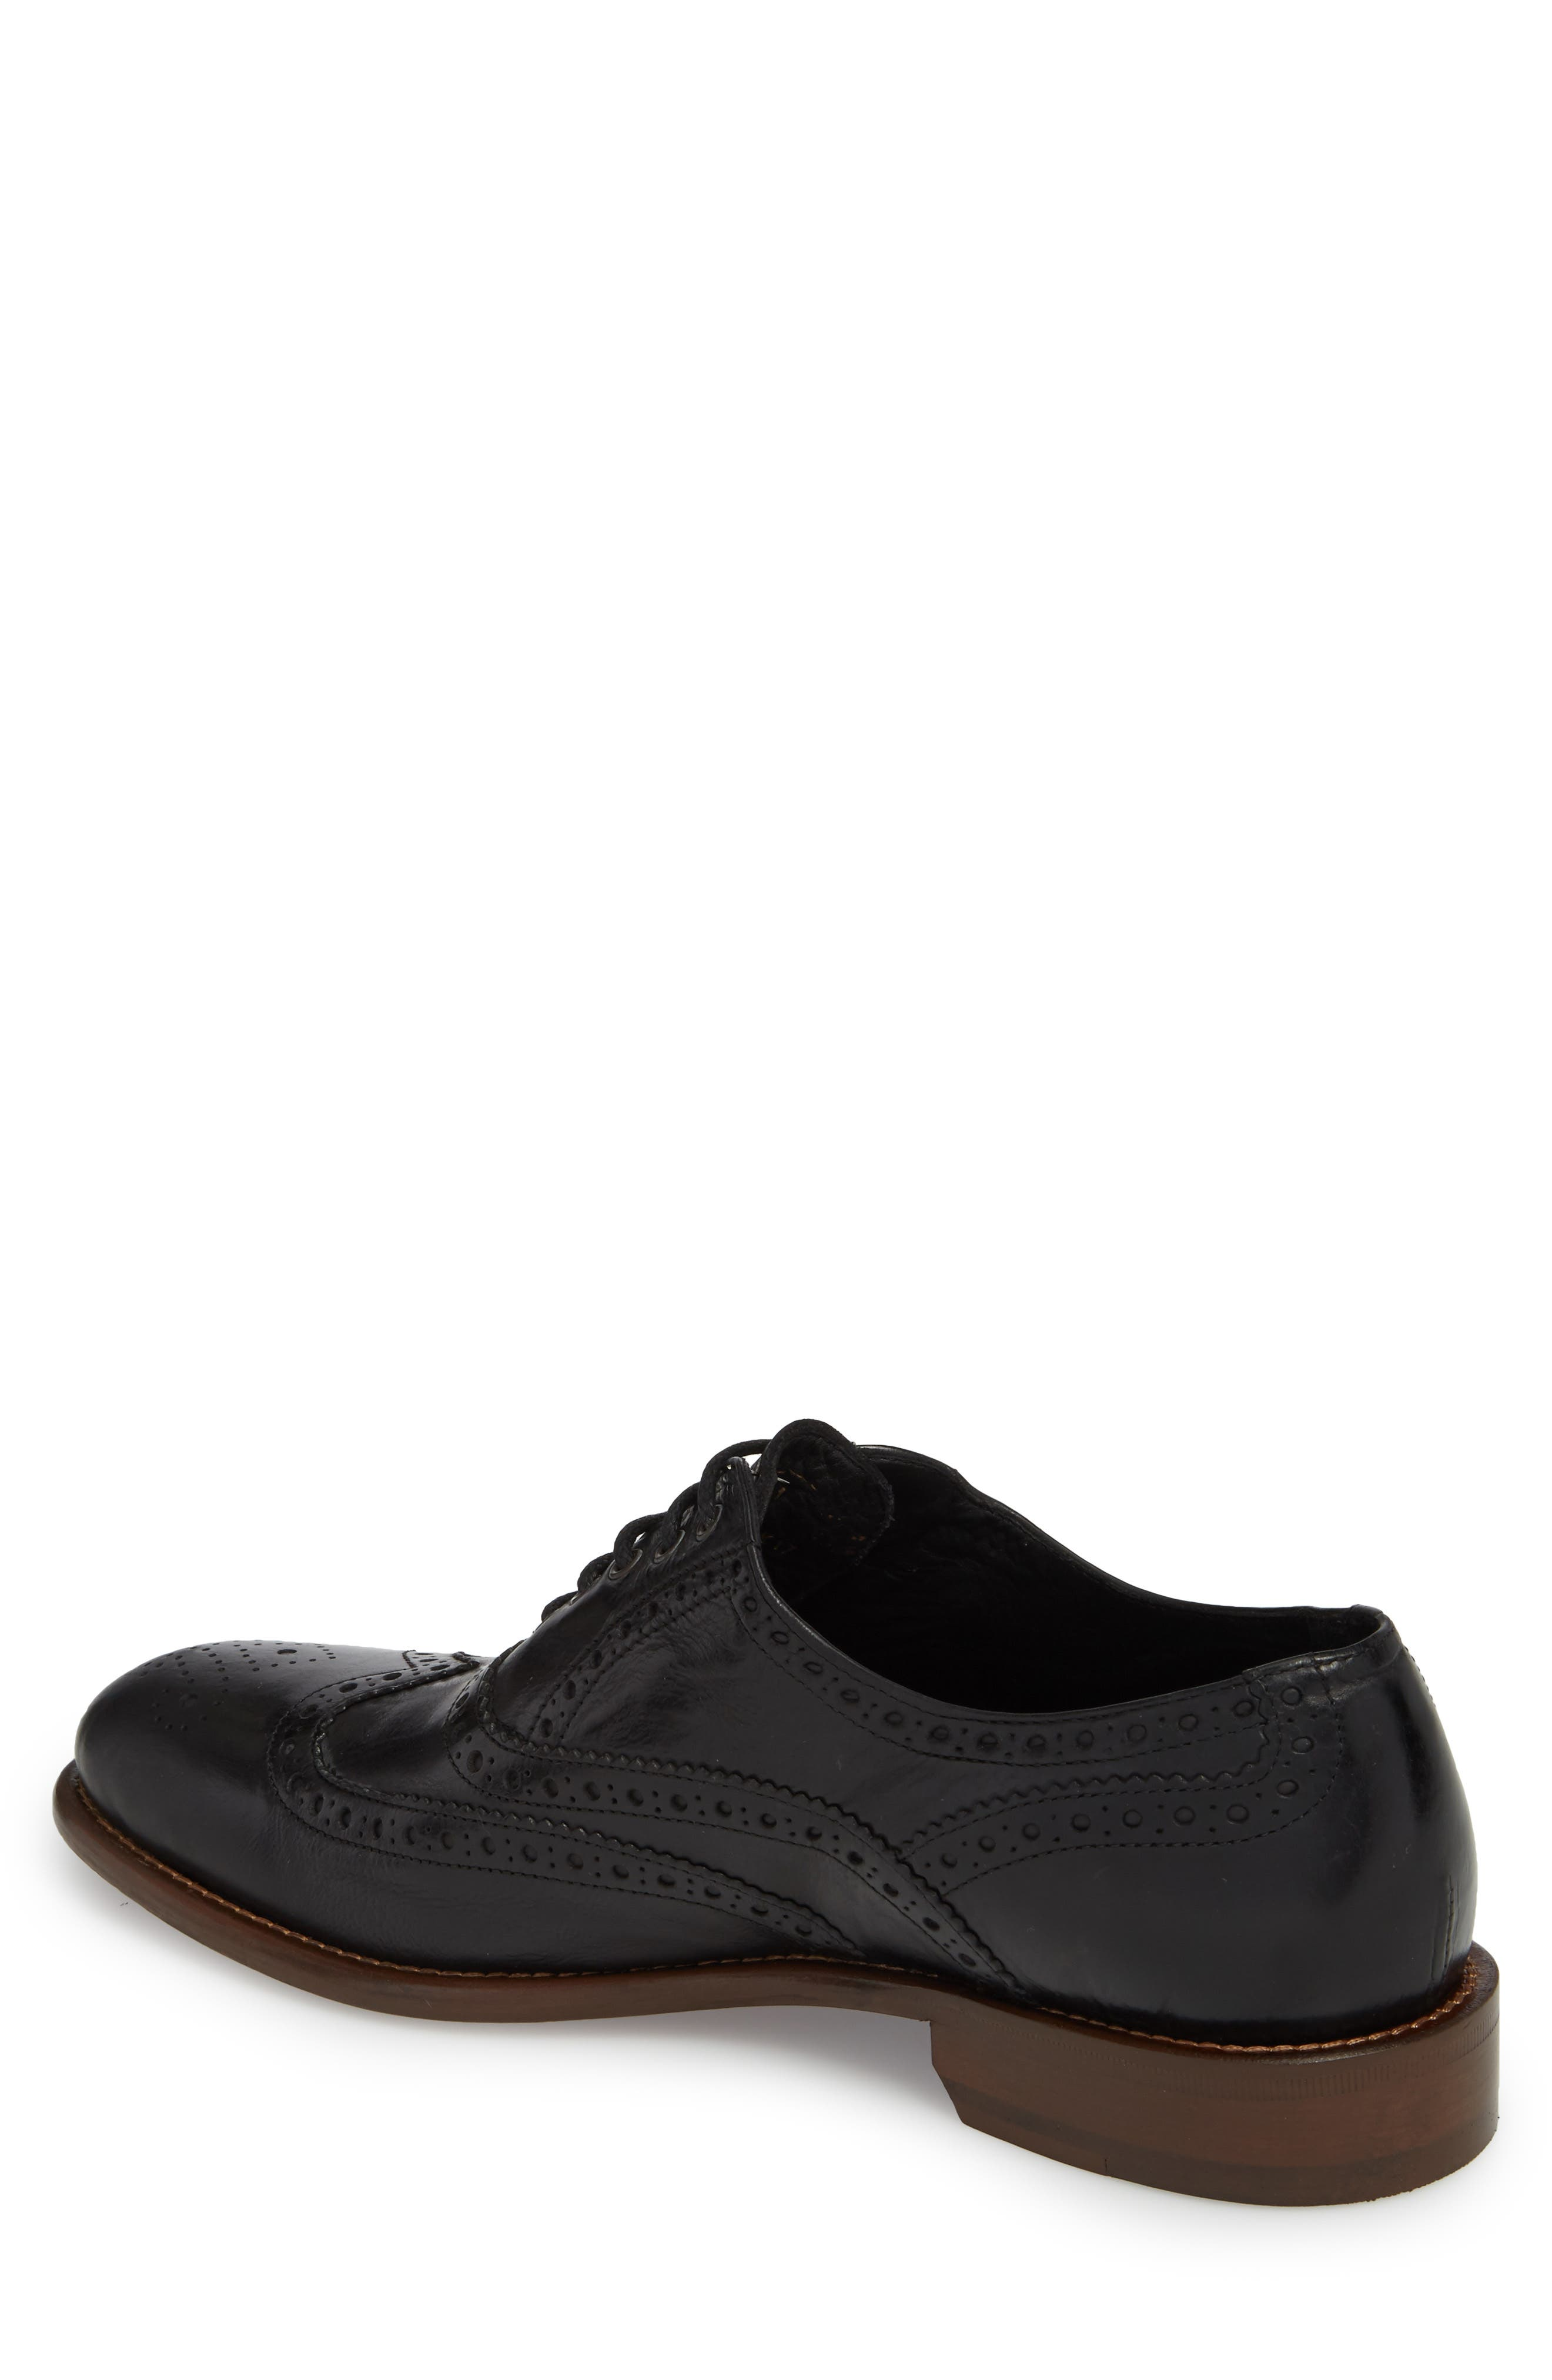 Bryson Wingtip Oxford,                             Alternate thumbnail 2, color,                             BLACK LEATHER